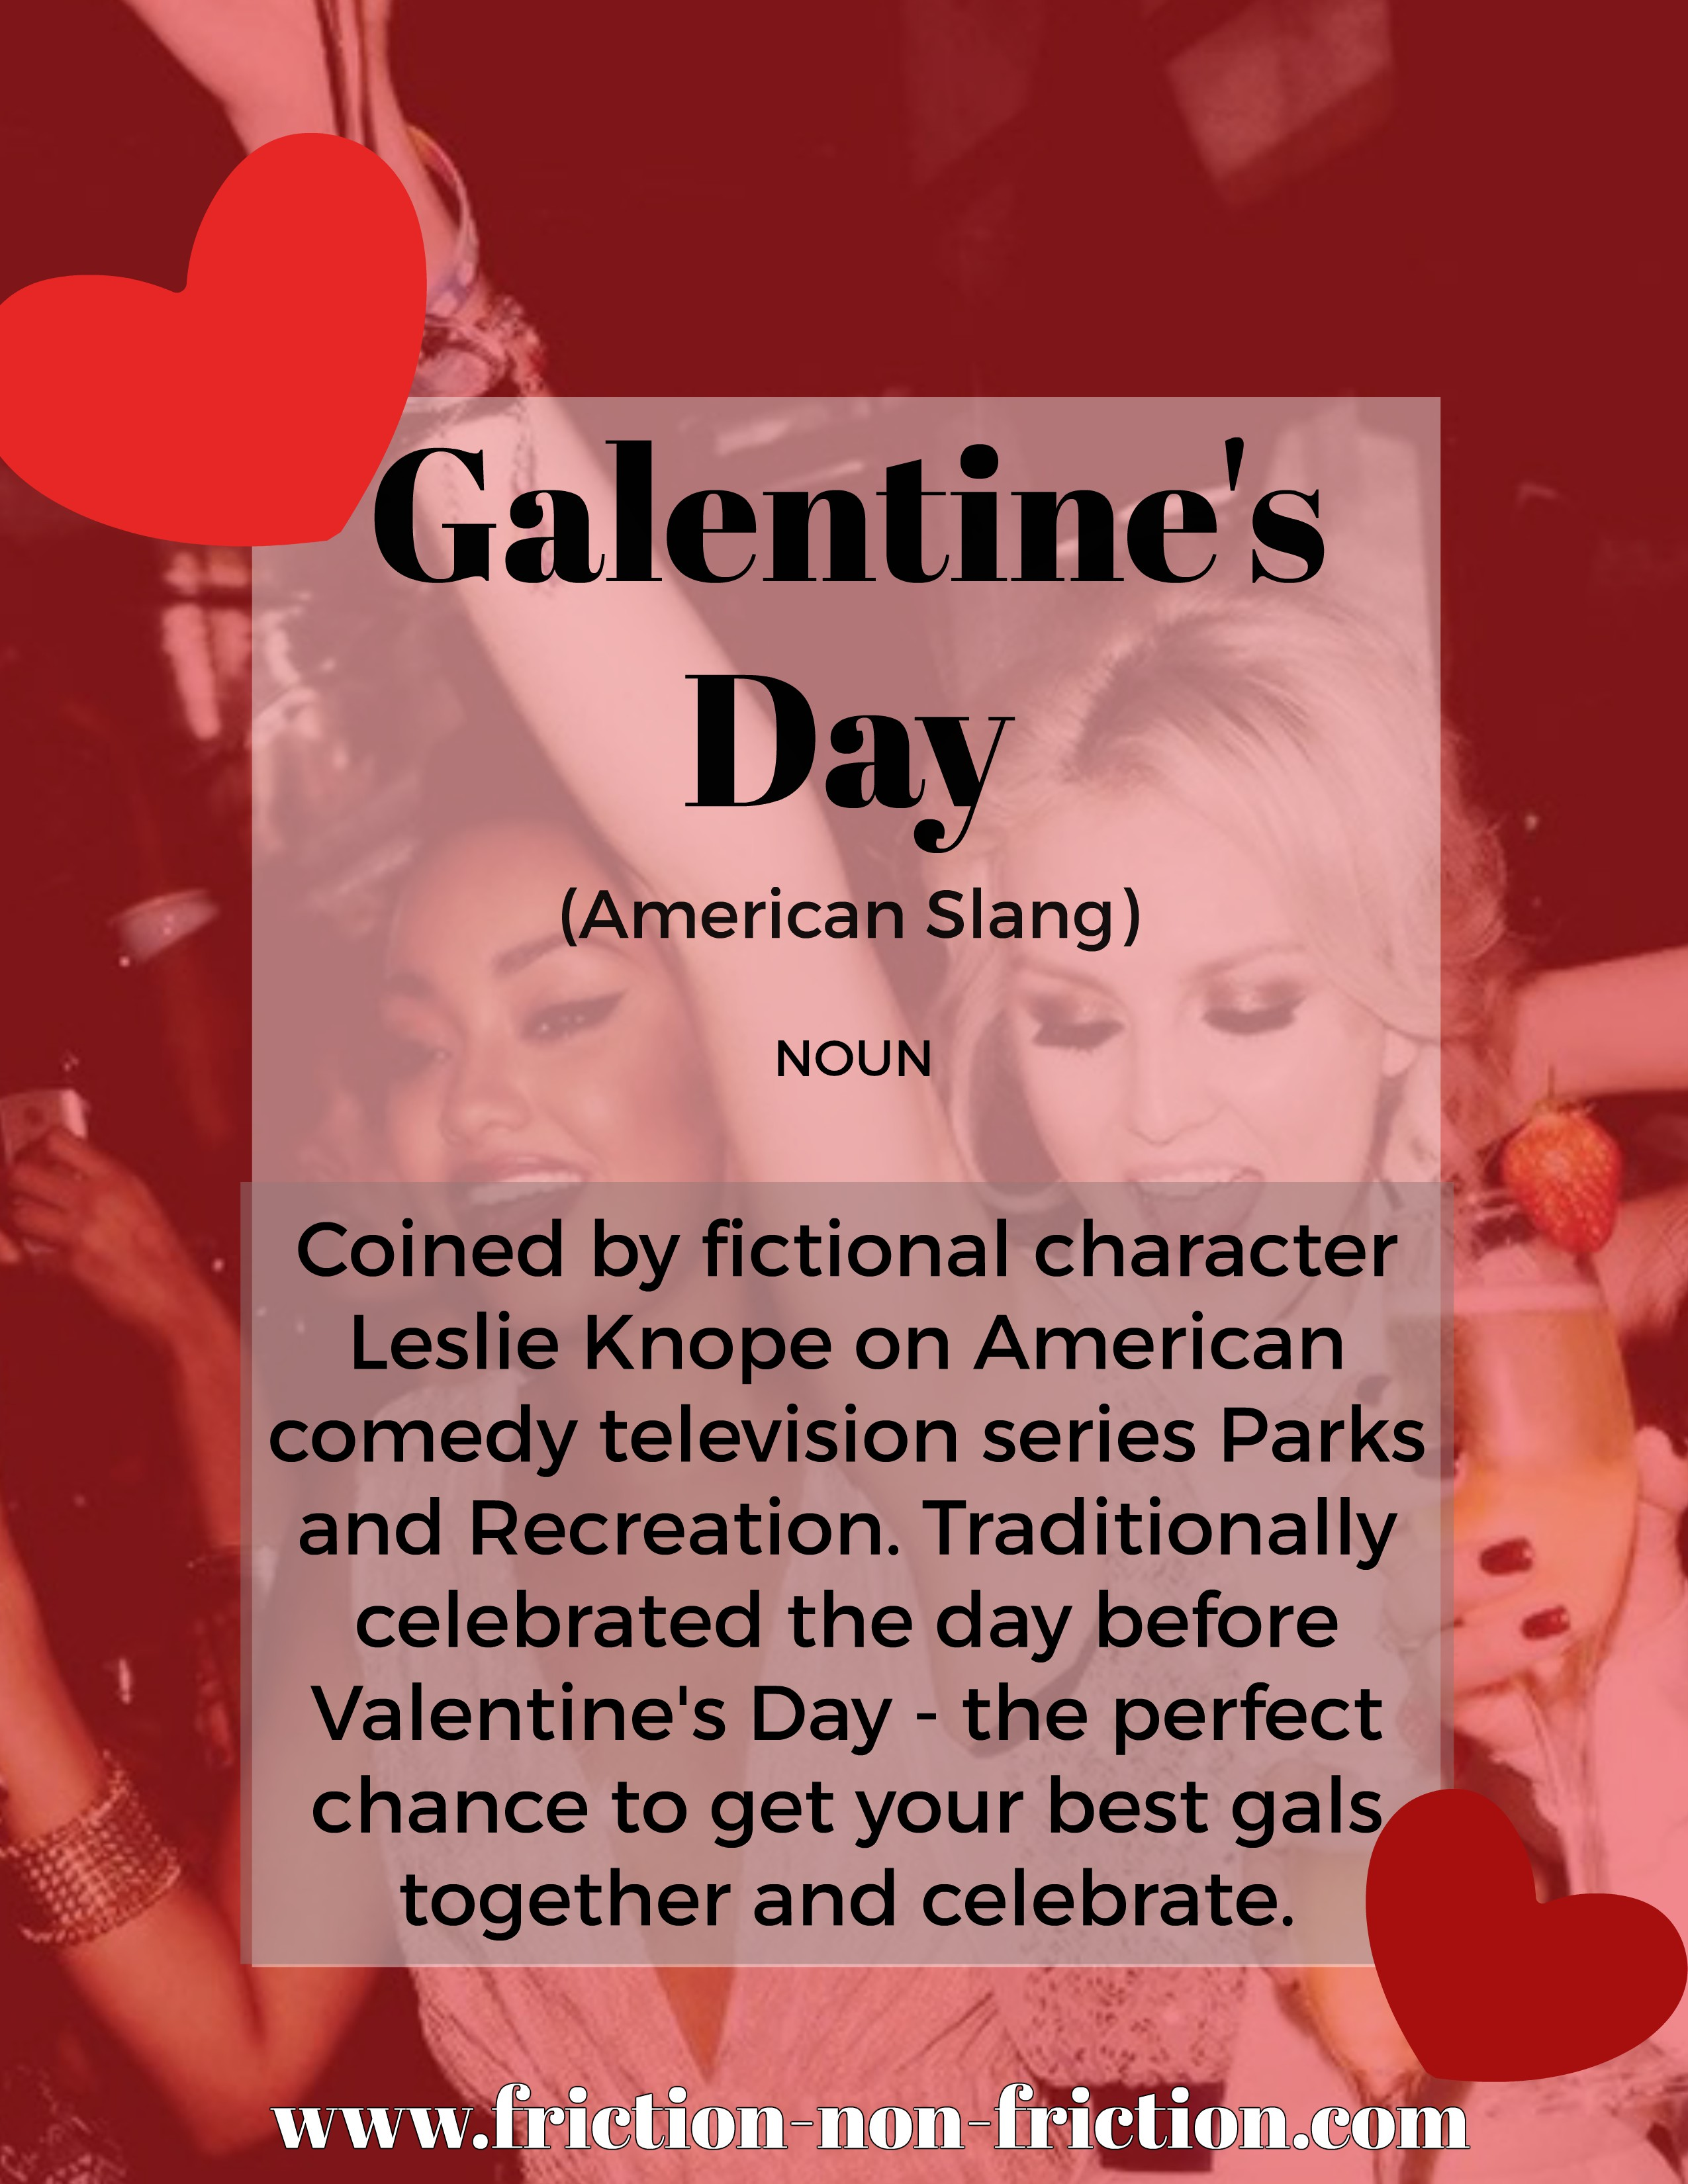 Galentine's Day - another great FRICTIONARY definition from Friction|non|Friction